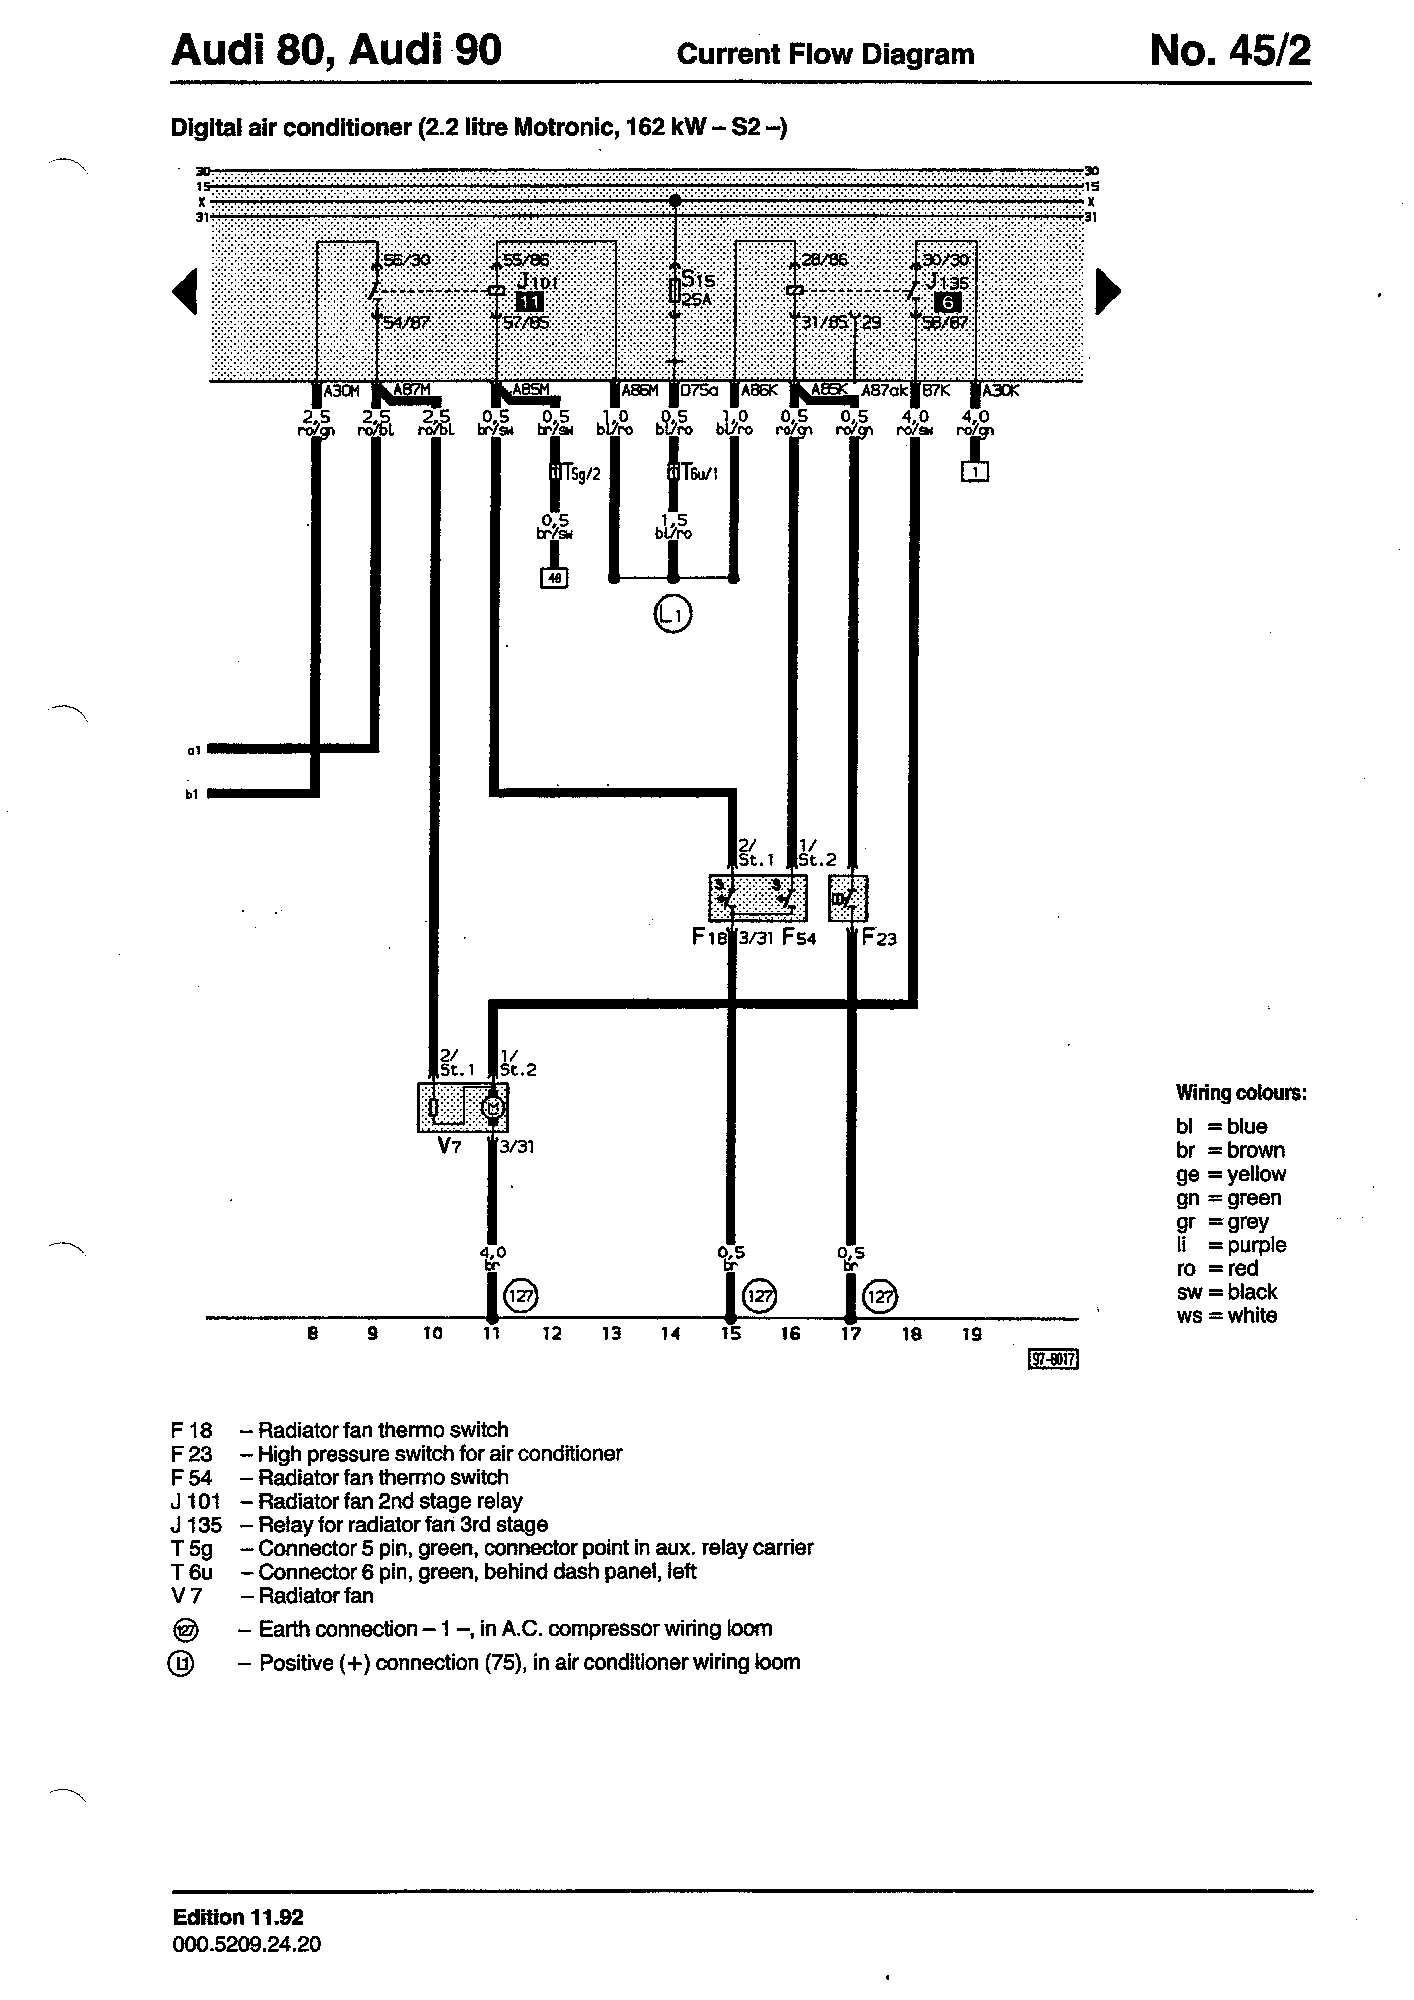 wiring diagrams component lookup high pressure switch for air conditioner f23